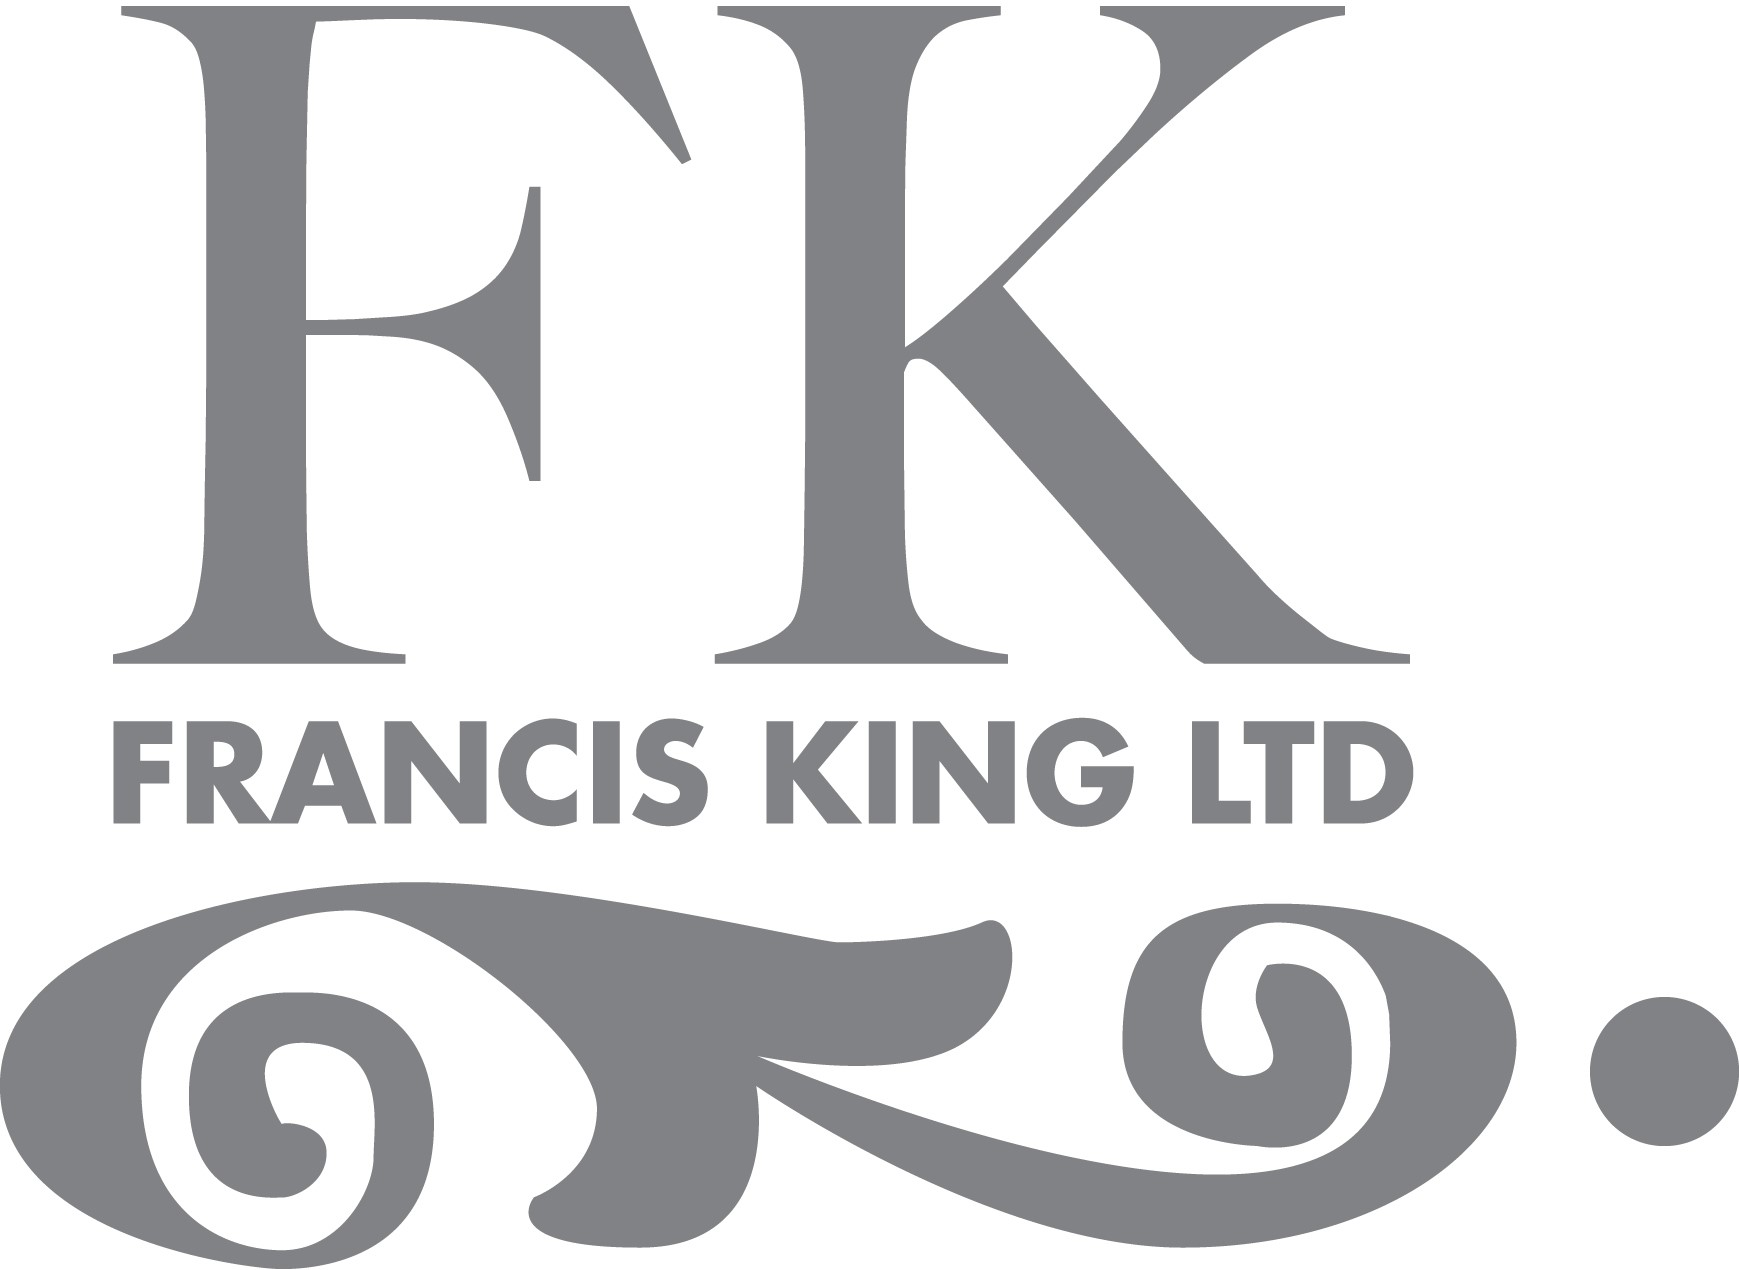 Francis King Ltd.